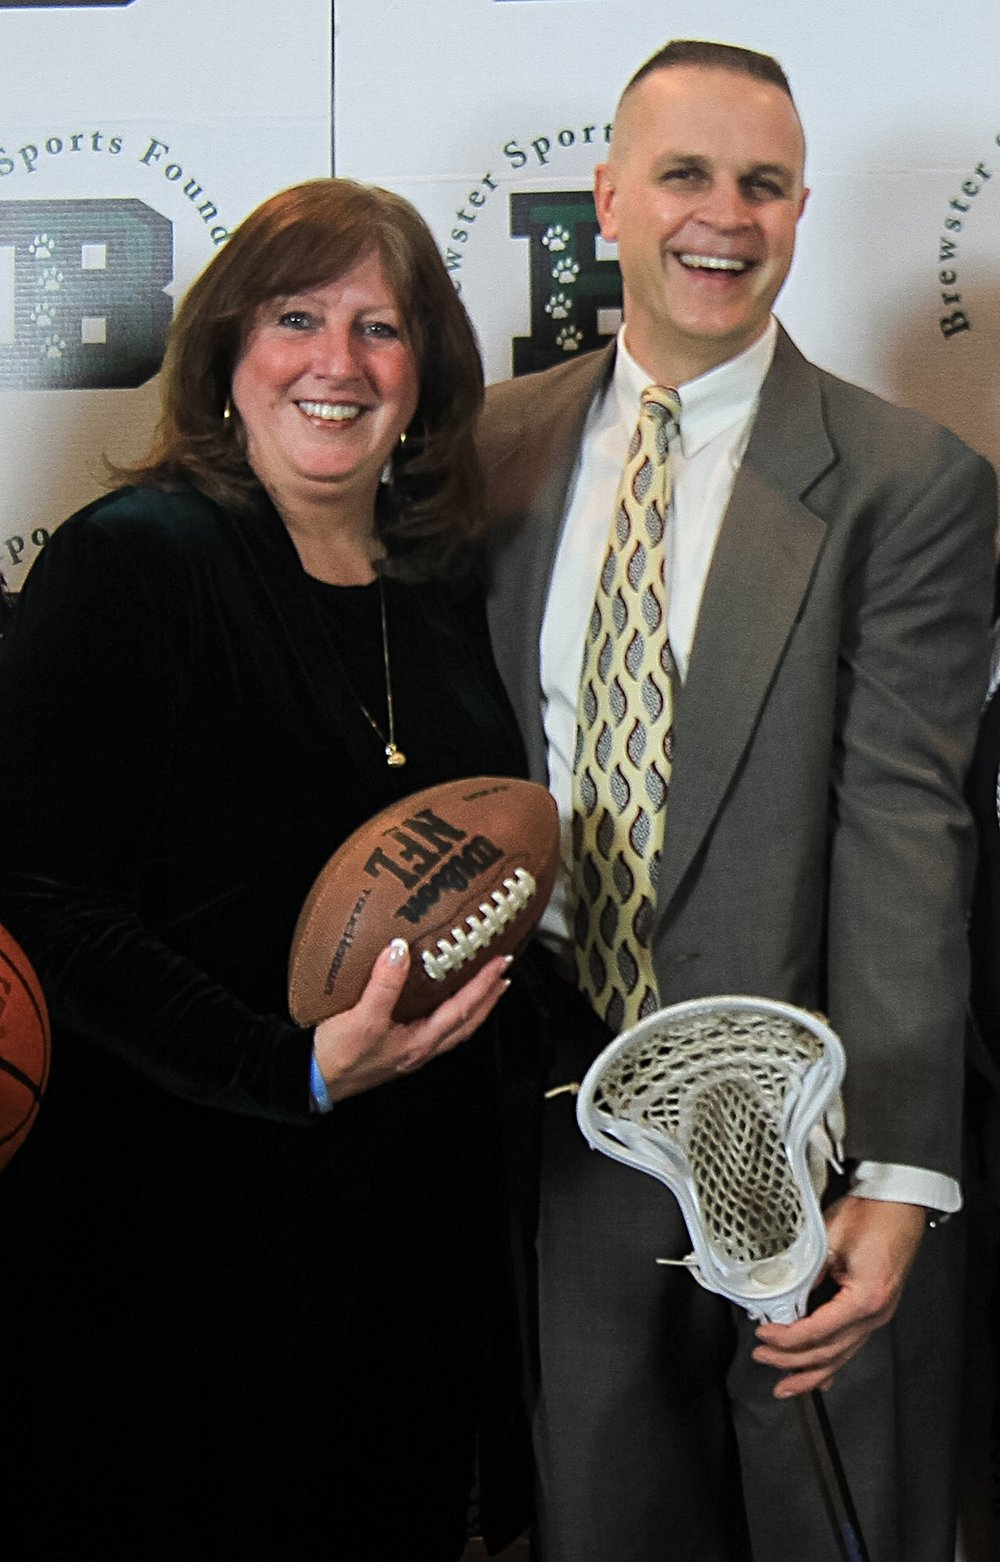 Lisa McPartland, Vice President, with Mr. Berardo